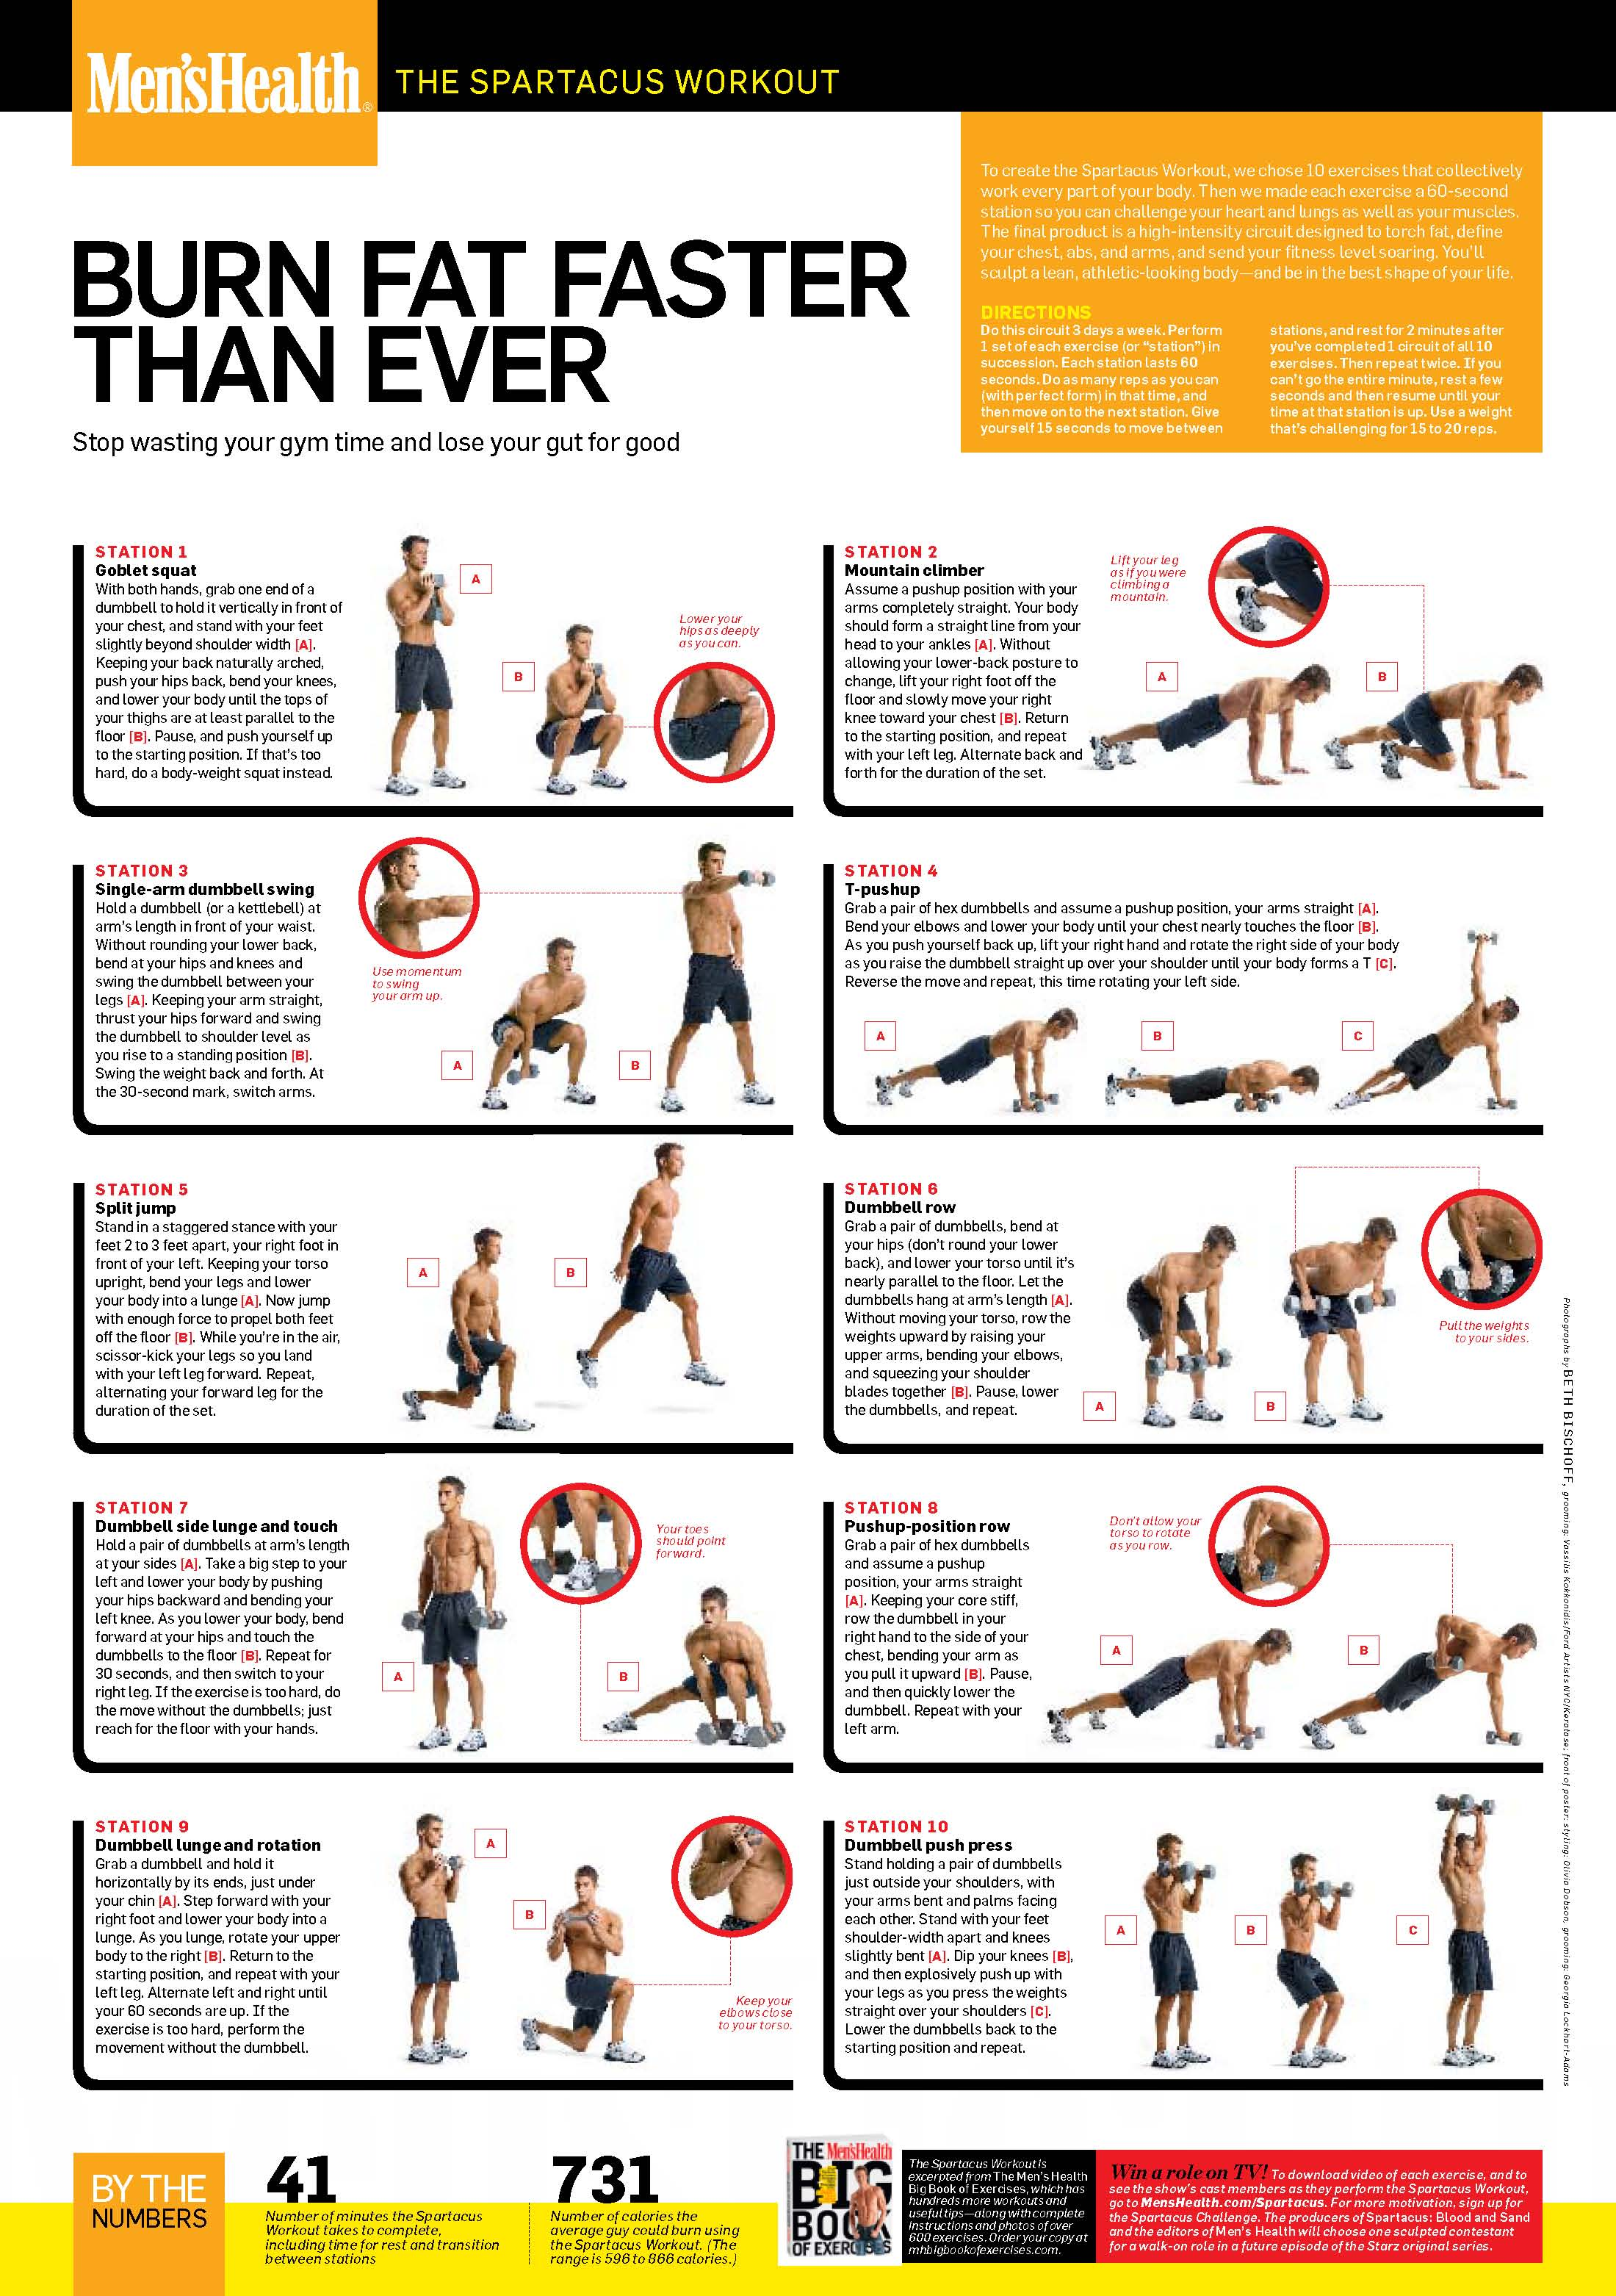 The Spartacus Workout  Spartacus Workout Health Magazine And